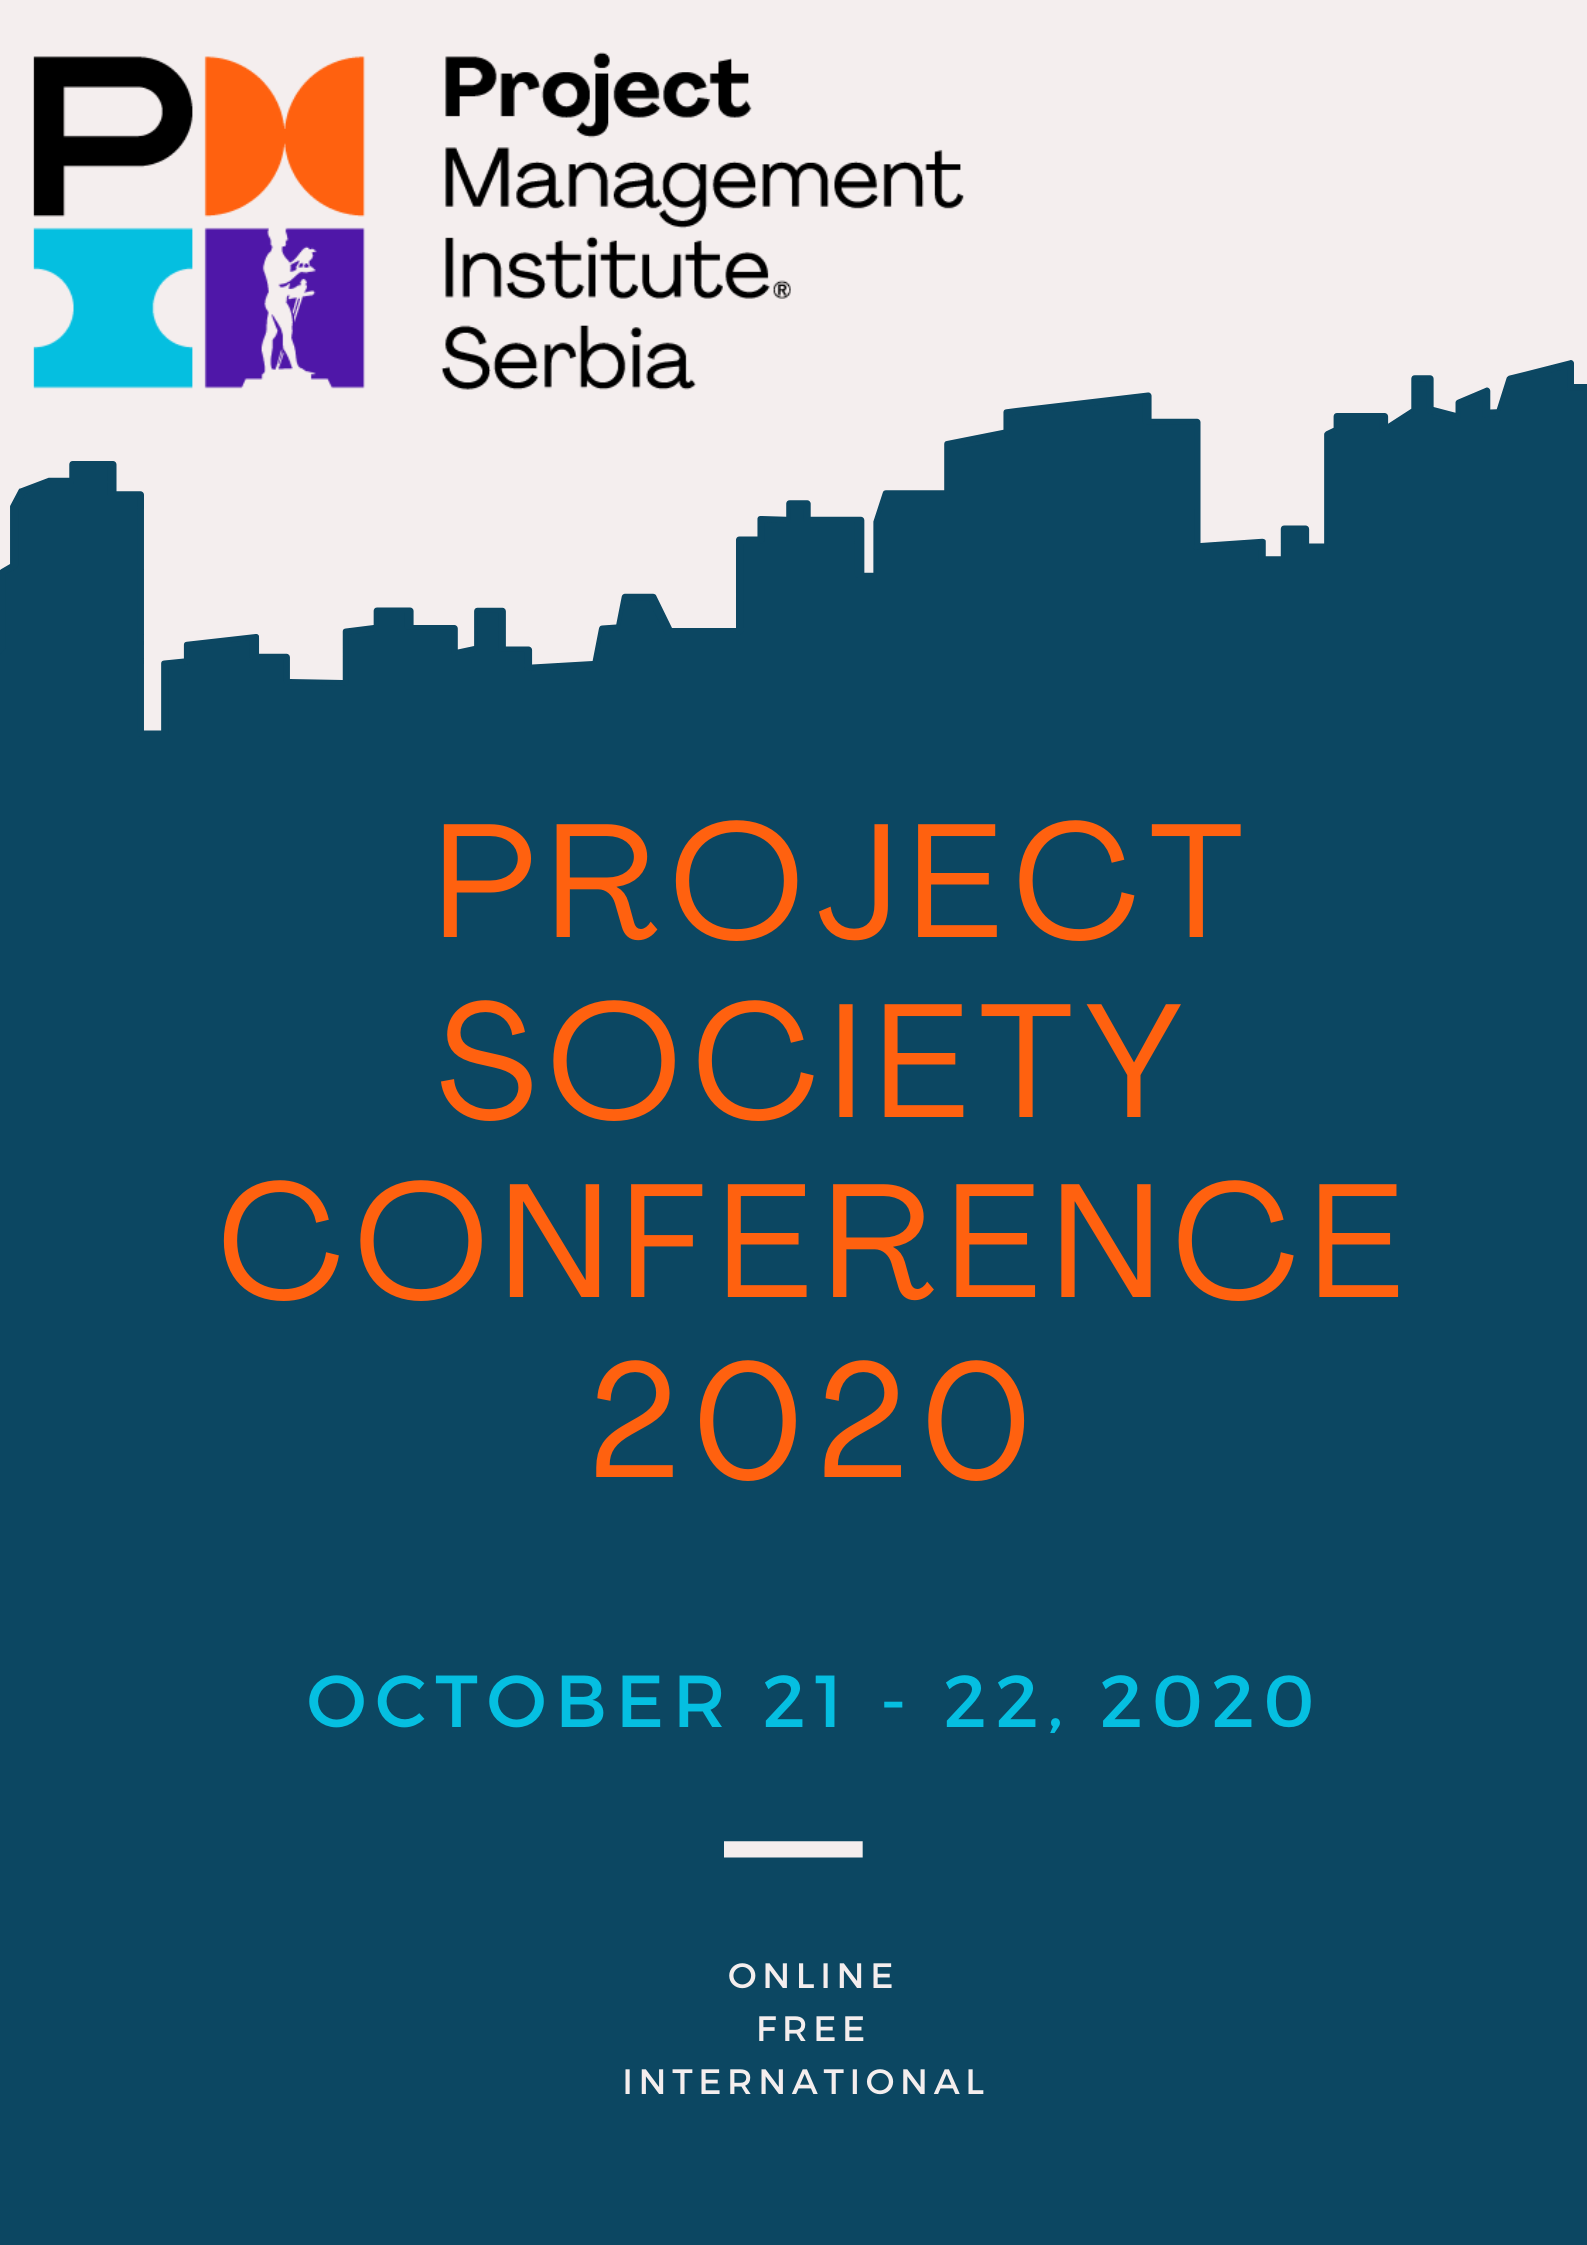 Project Society Conference 2020 – Invitation for Presenters